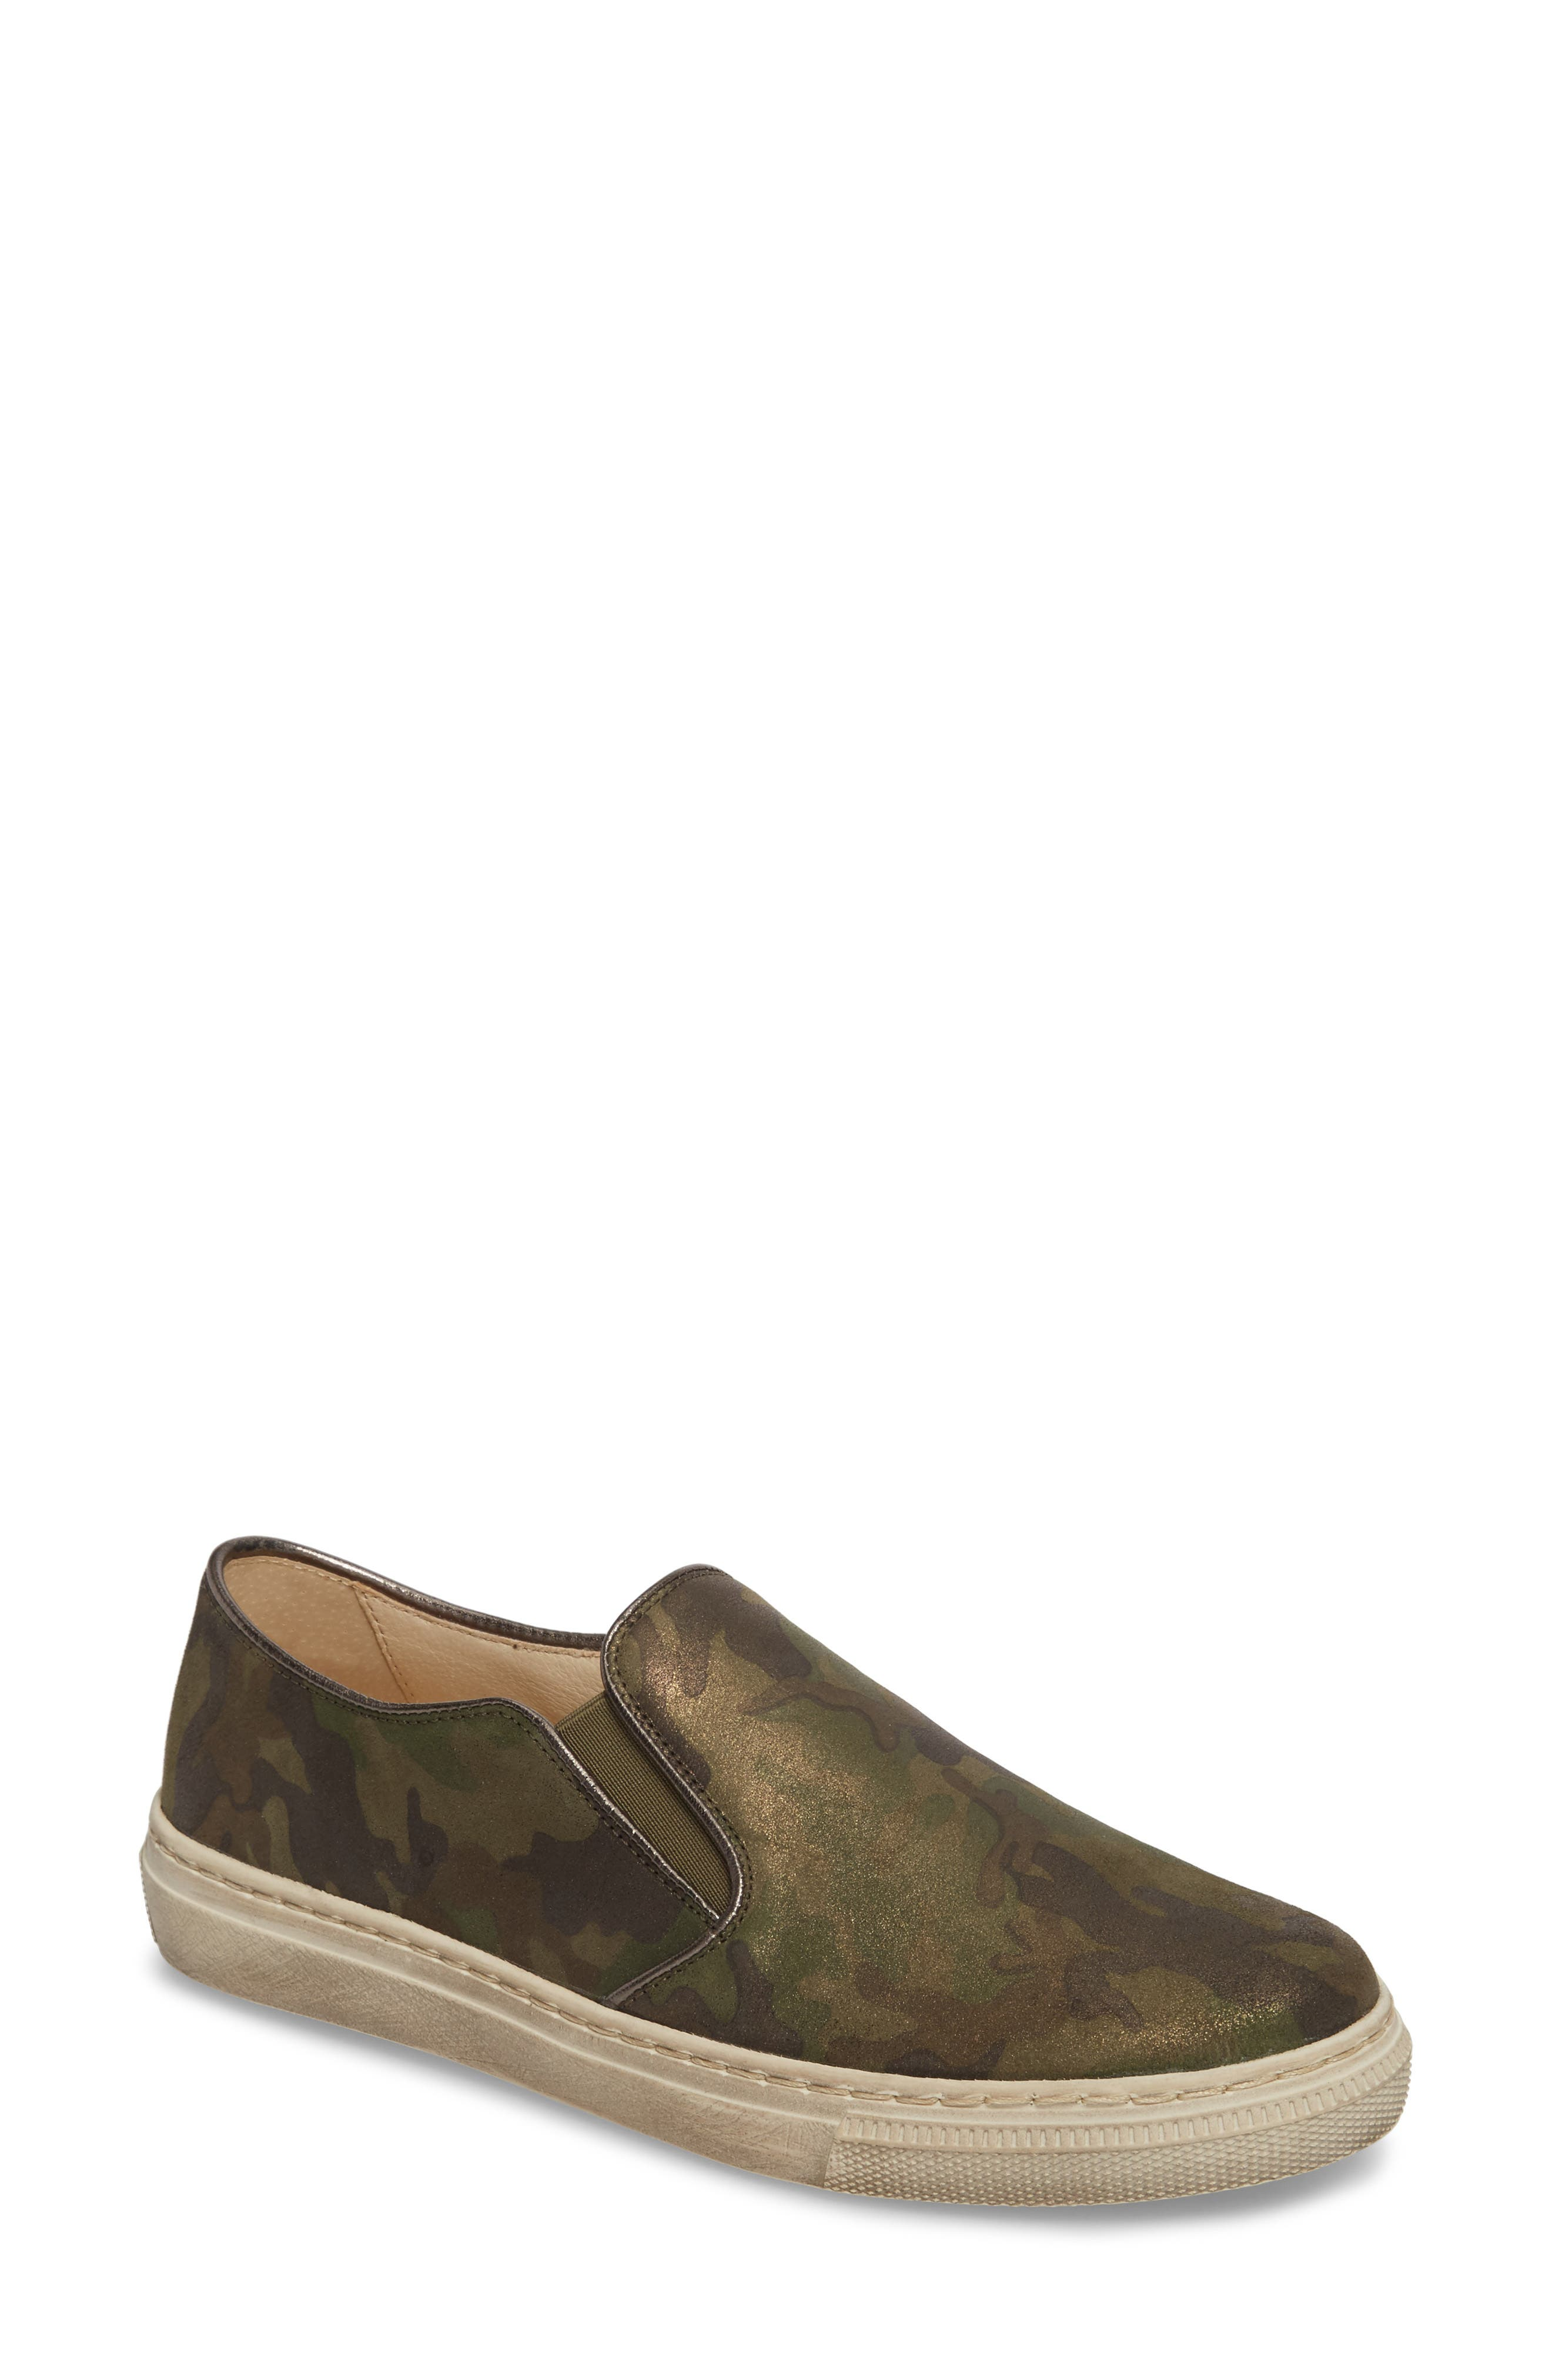 Slip-On Sneaker,                         Main,                         color, Green Leather